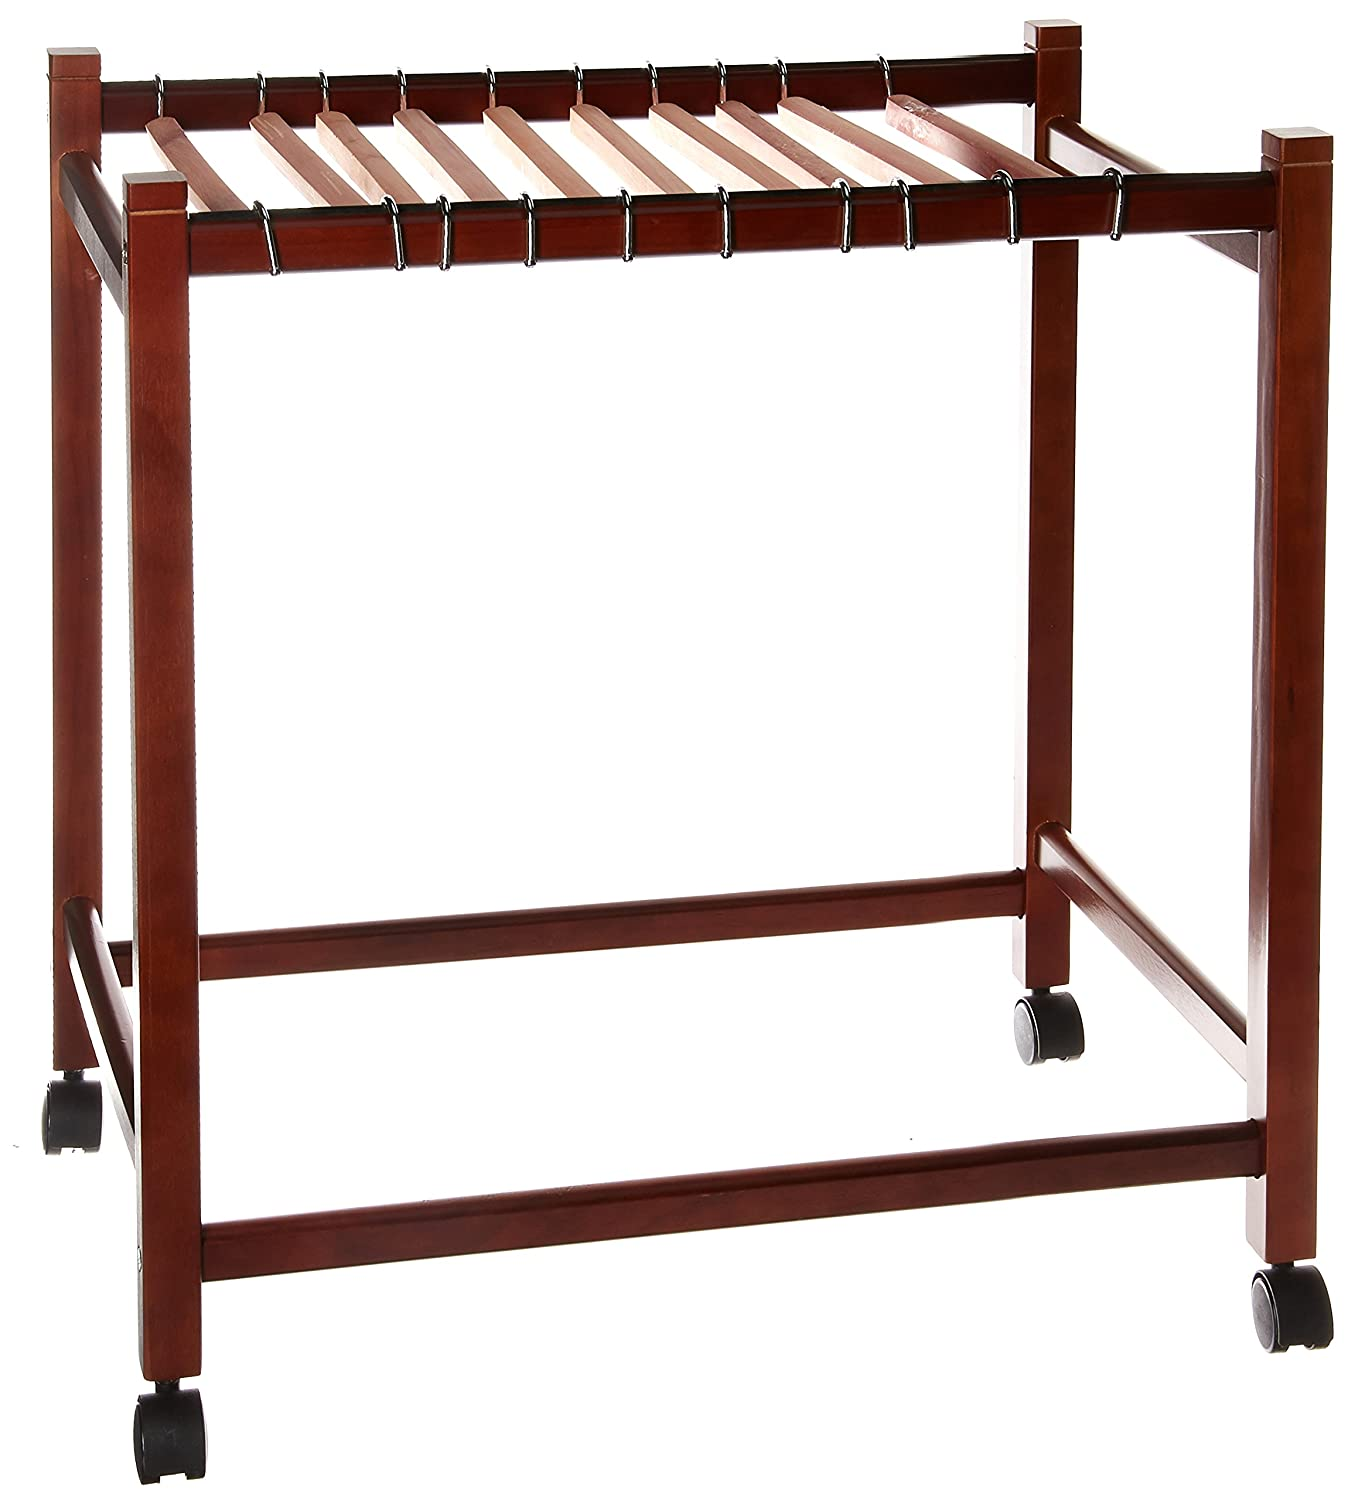 Woodlore Compact Pant, Trolley 82063